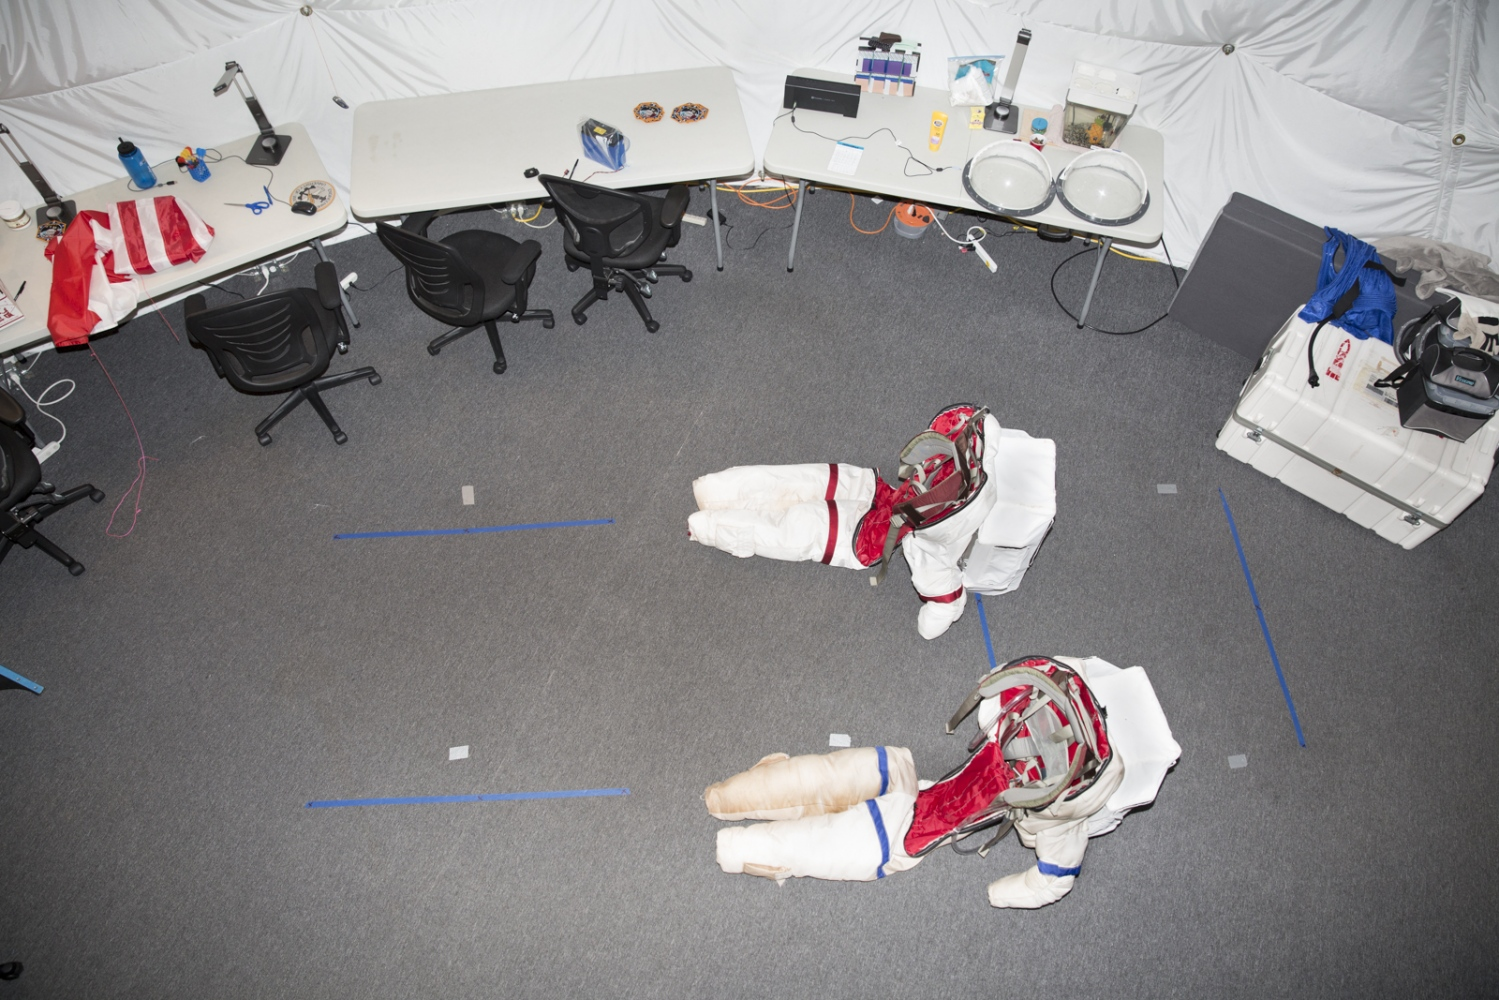 Space suits are photographed inside the dome on volcano Mauna Loa, where six researchers have been living for eight months in isolation for the NASA human performance study Hawaii Space Exploration Analog and Simulation. During the months of isolation the researchers can leave the dome only for brief excursions, wearing the spacesuits with a helmet and oxygen supply. Hawaii, Big Island.